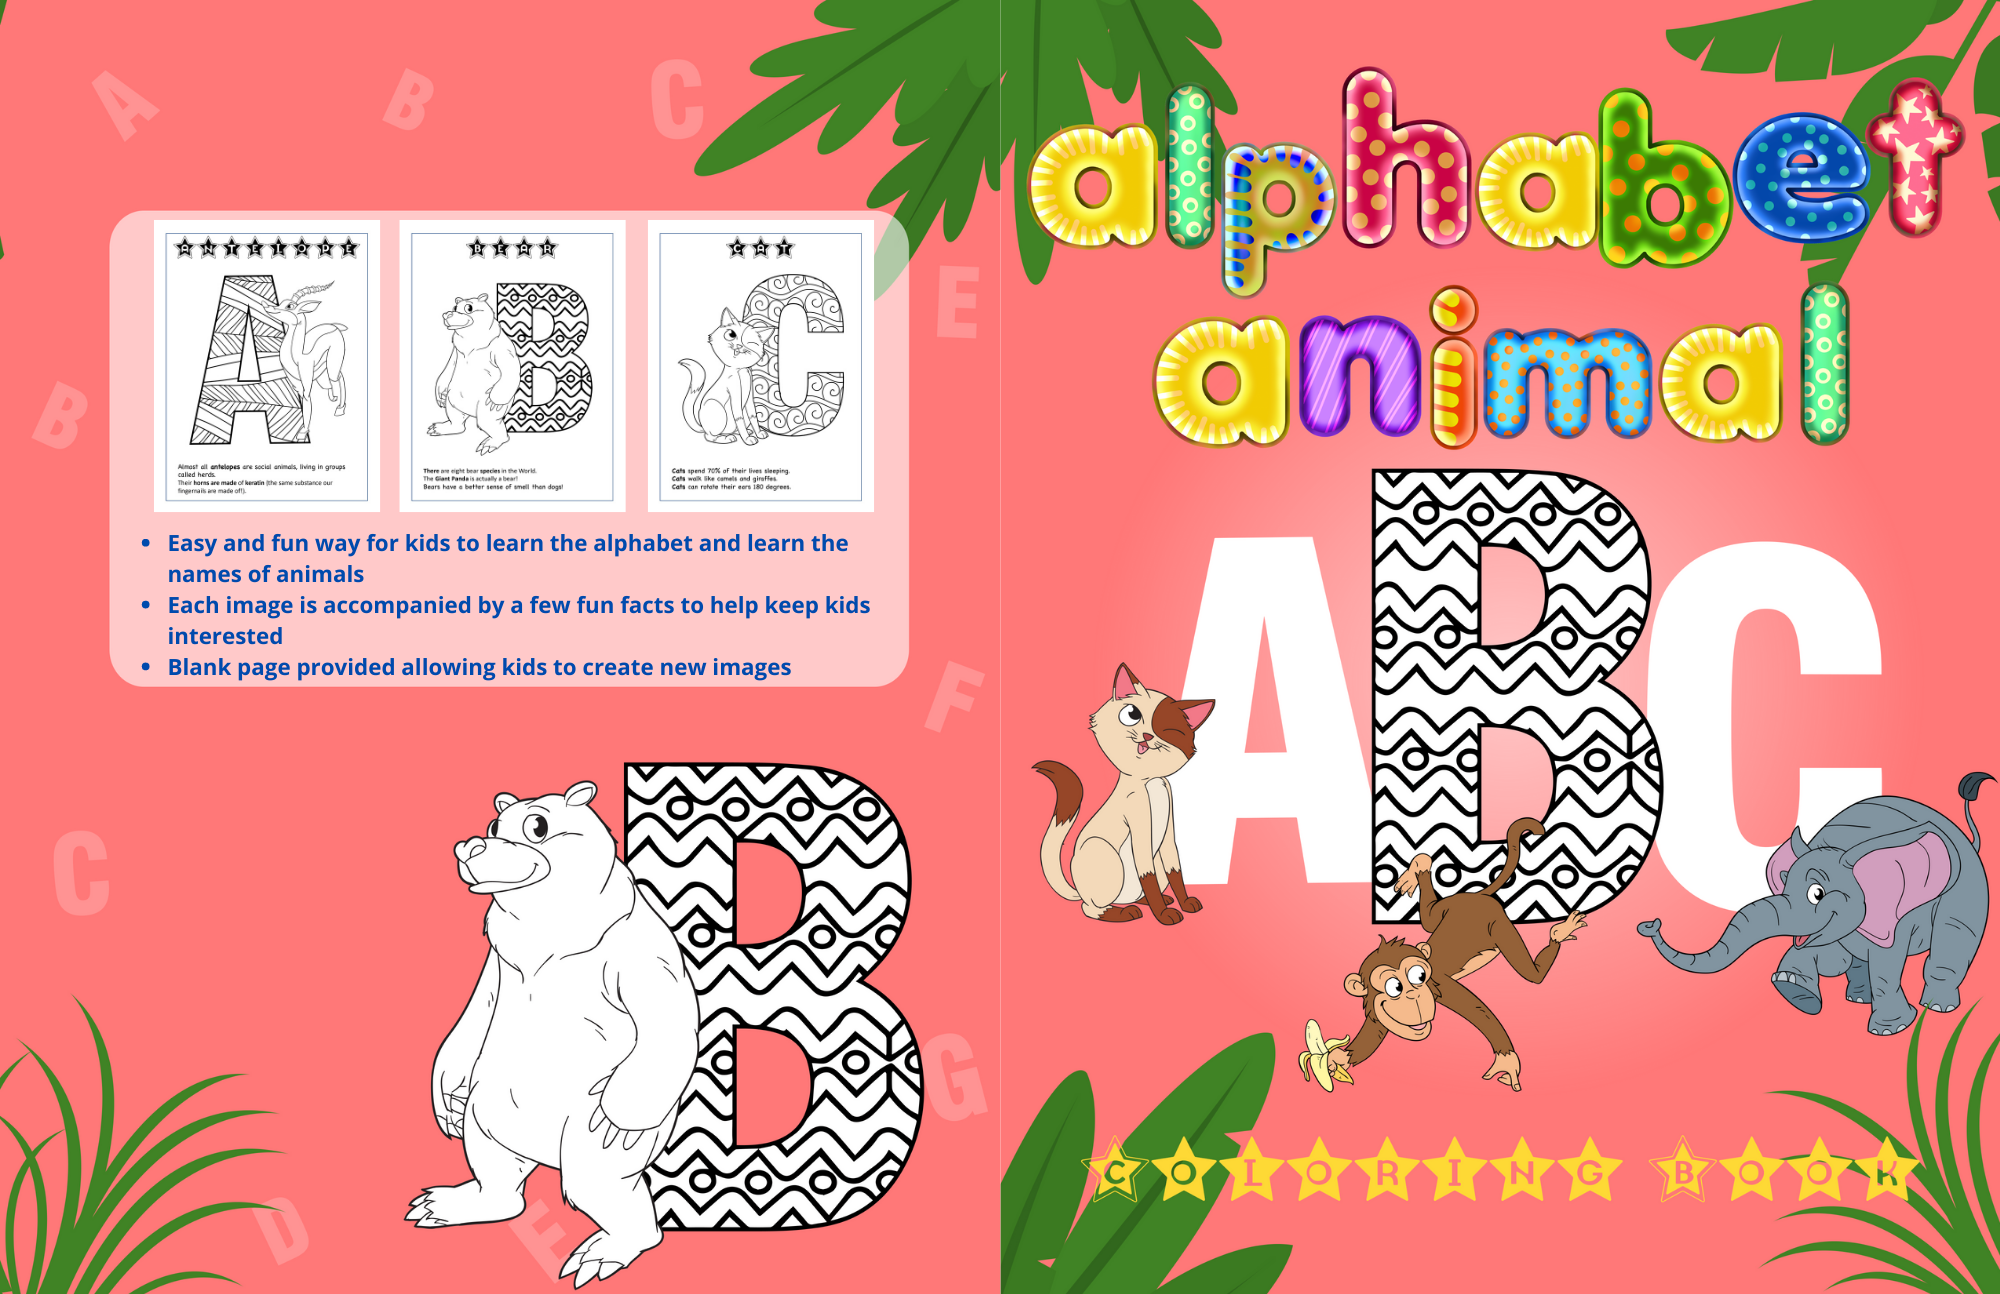 Alphabet Animal Abc Coloring Book For Kids Toddler Coloring Book Abc Coloring Abc For Kids